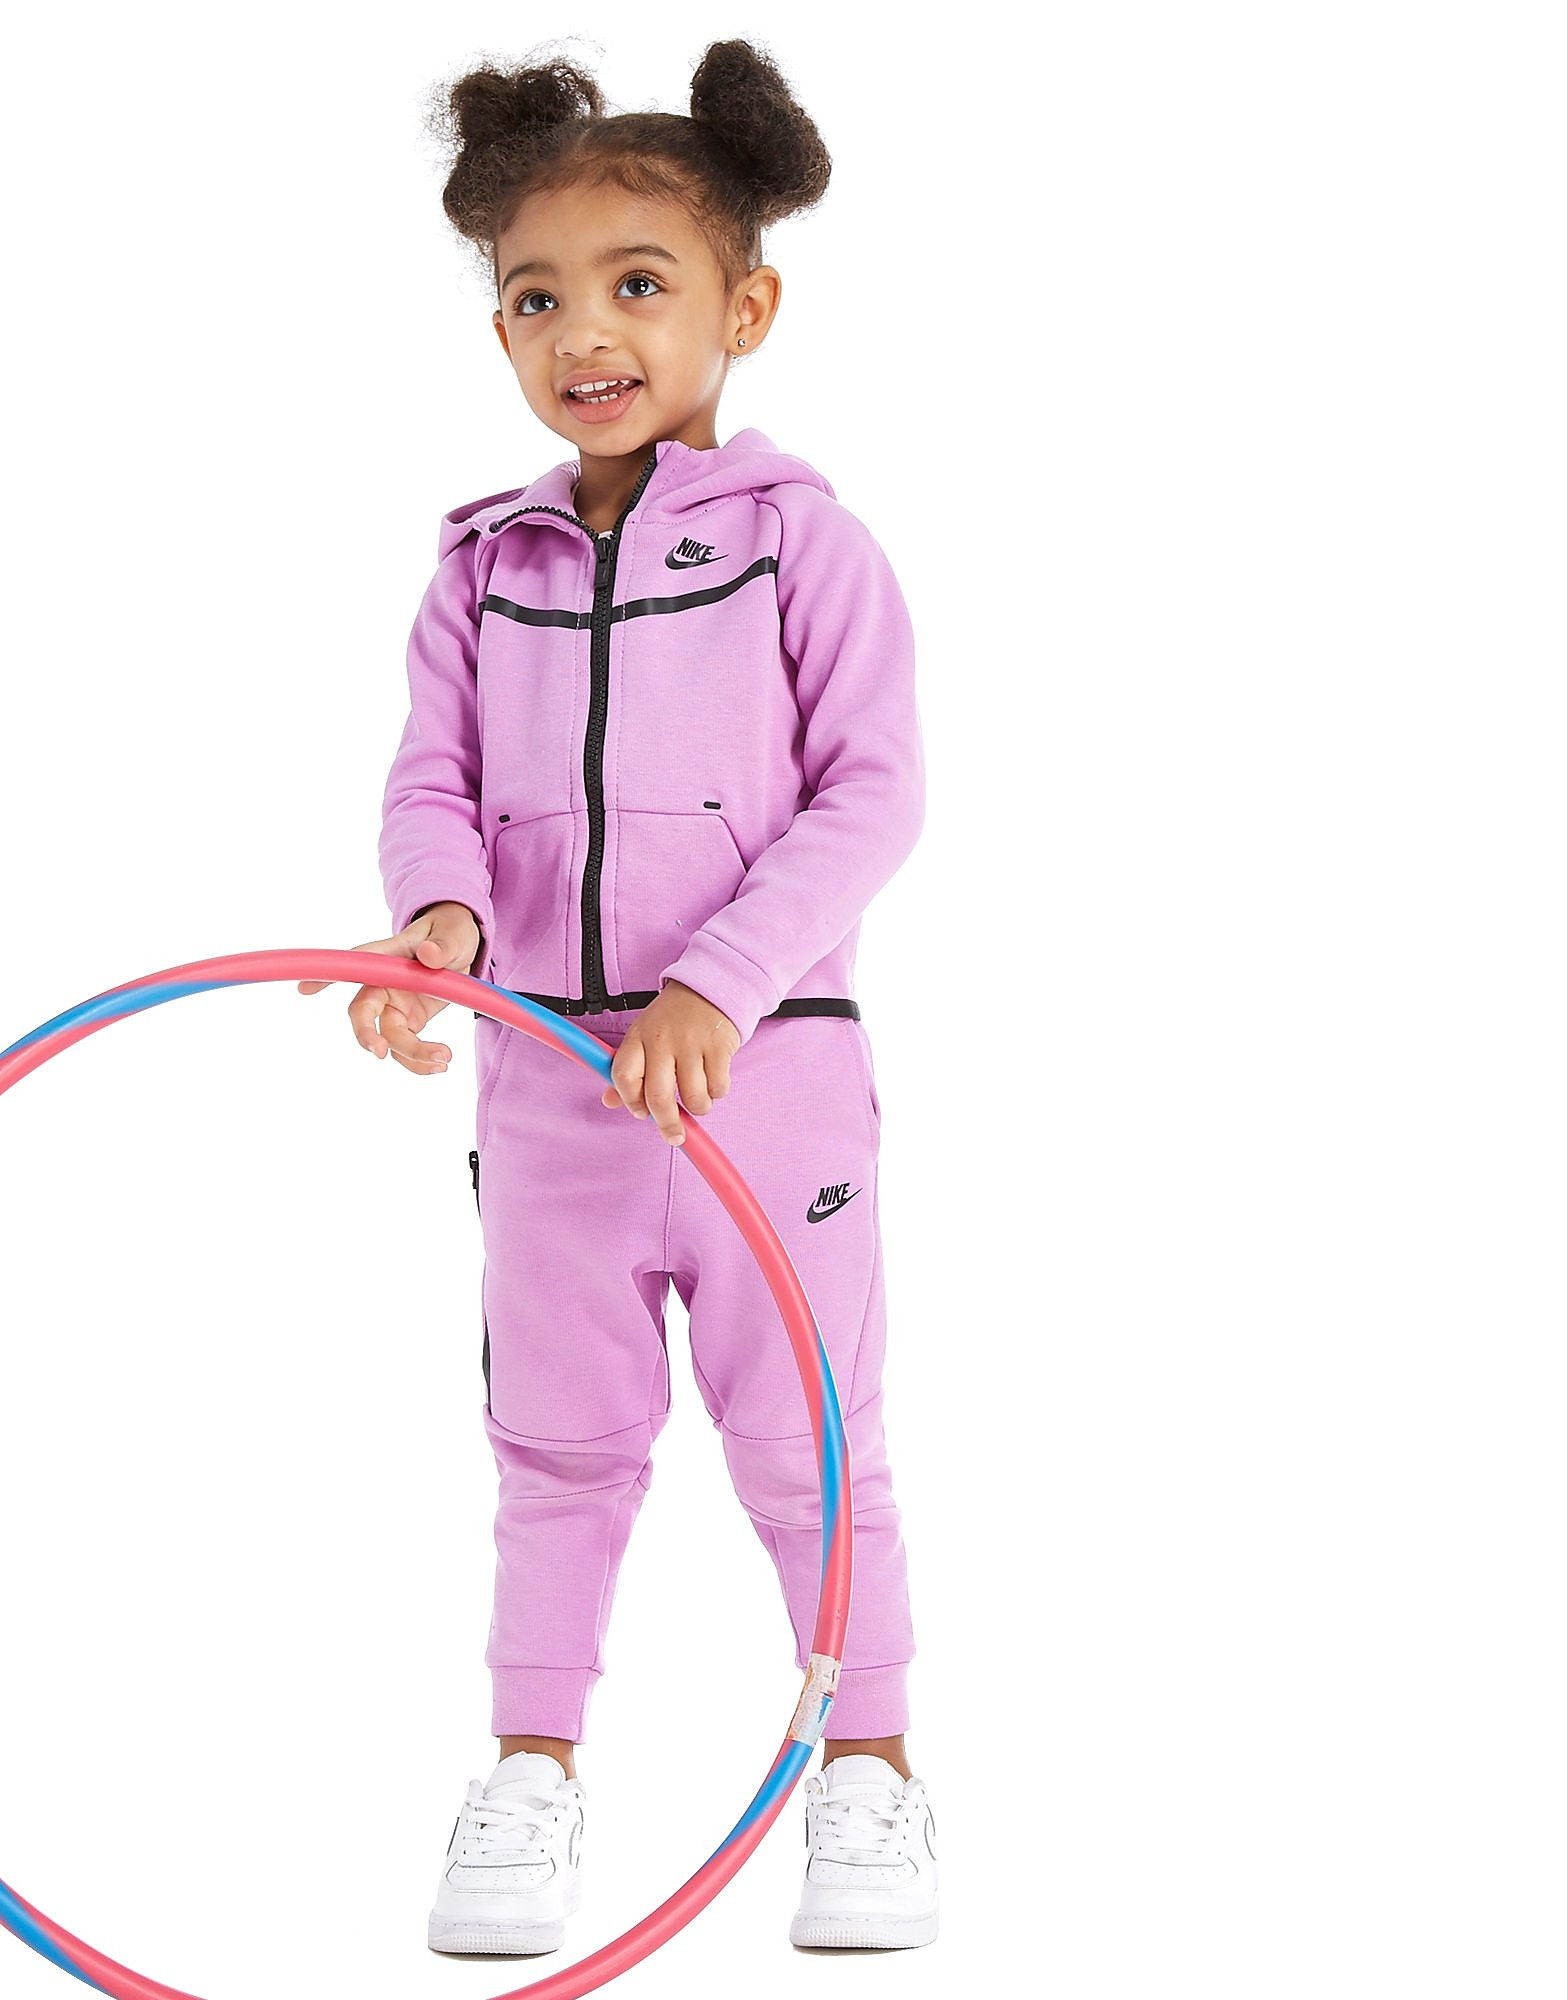 Nike Girls' Tech Full Zip Suit Infant